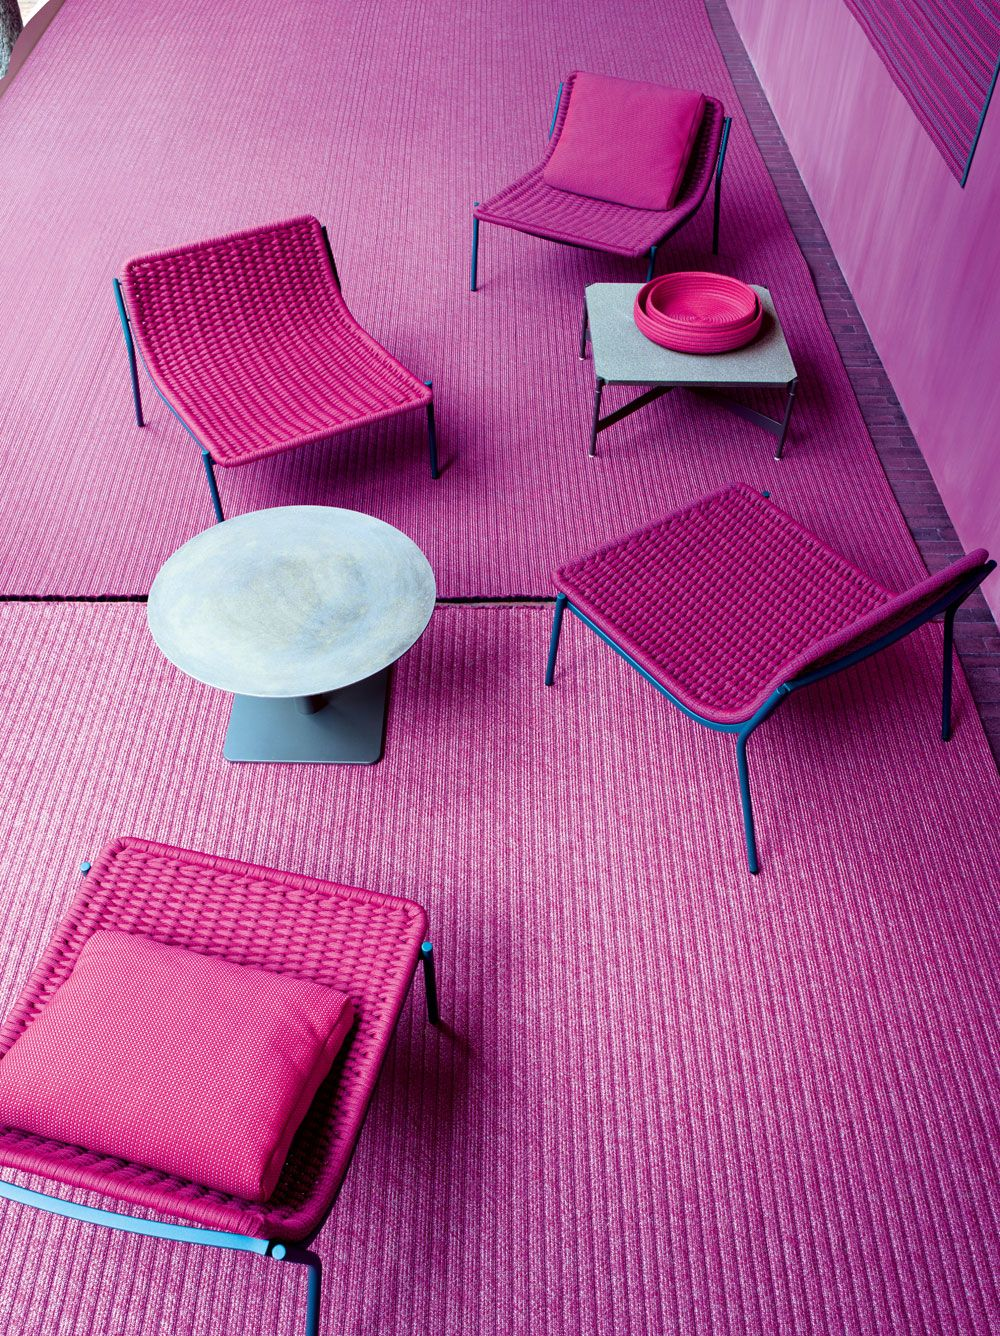 New Bay by Paola Lenti. | Paola Lenti | Pinterest | Interiors and House